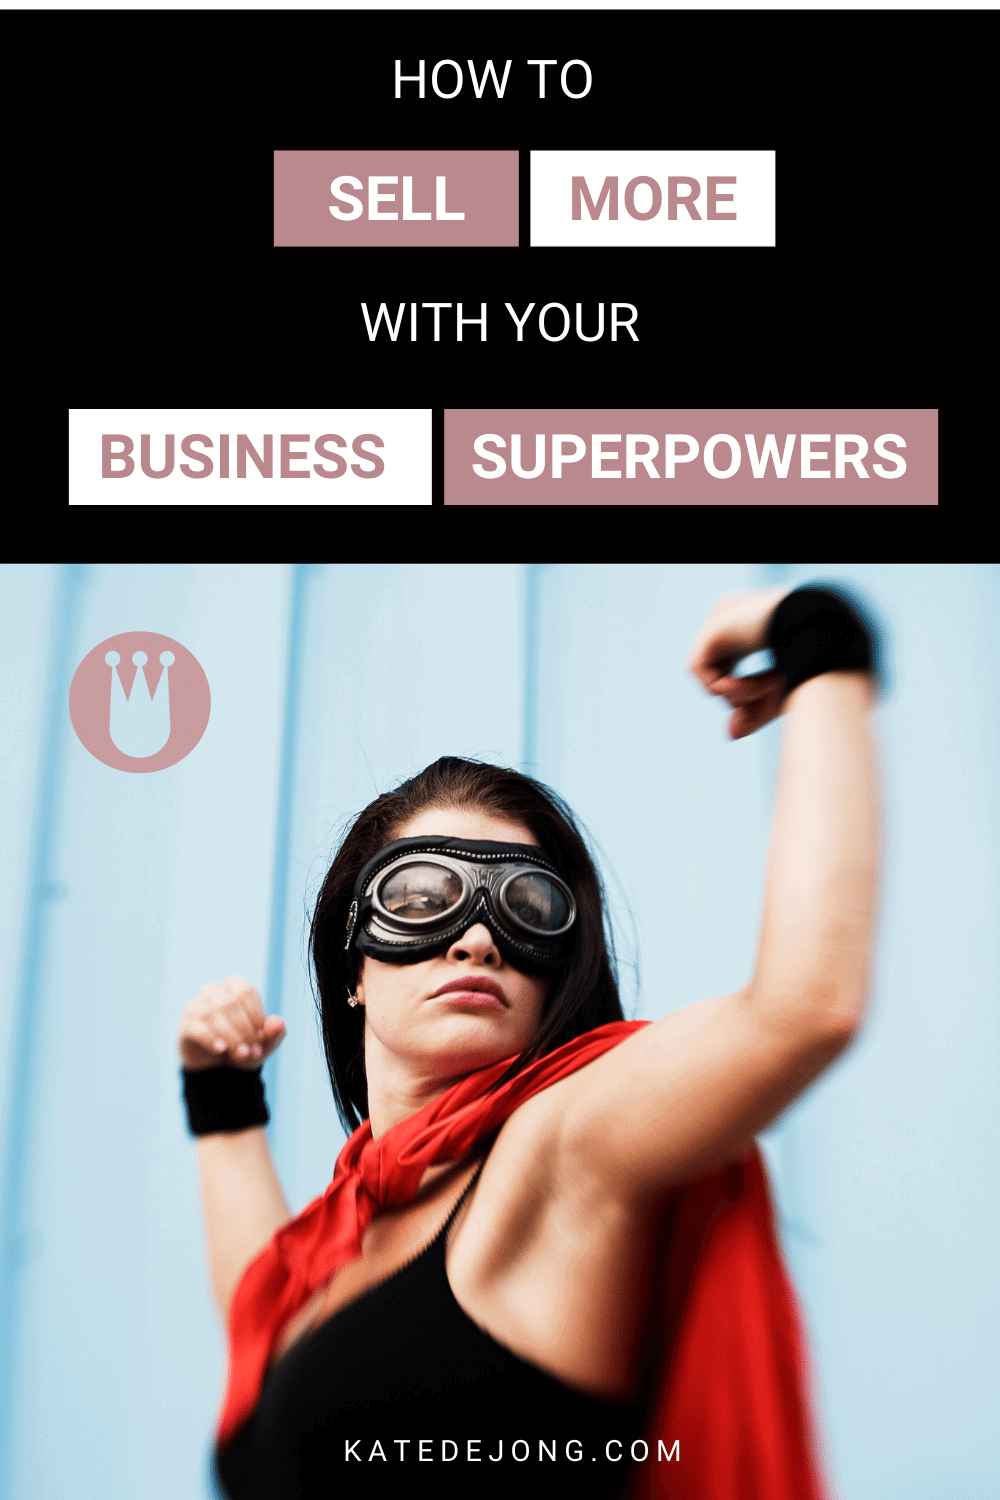 As women, we're not typically good at telling others how good we are. But in business this is a necessary thing to do! Otherwise, how will your prospects know why they should choose you over your competition? Learn how to convey your brilliance with the Business Superpowers technique. Read on to discover how. #fempire #smallbusiness #businesscoach #businesscoachforwomen #entrepreneur #businessgrowth #growthstrategies